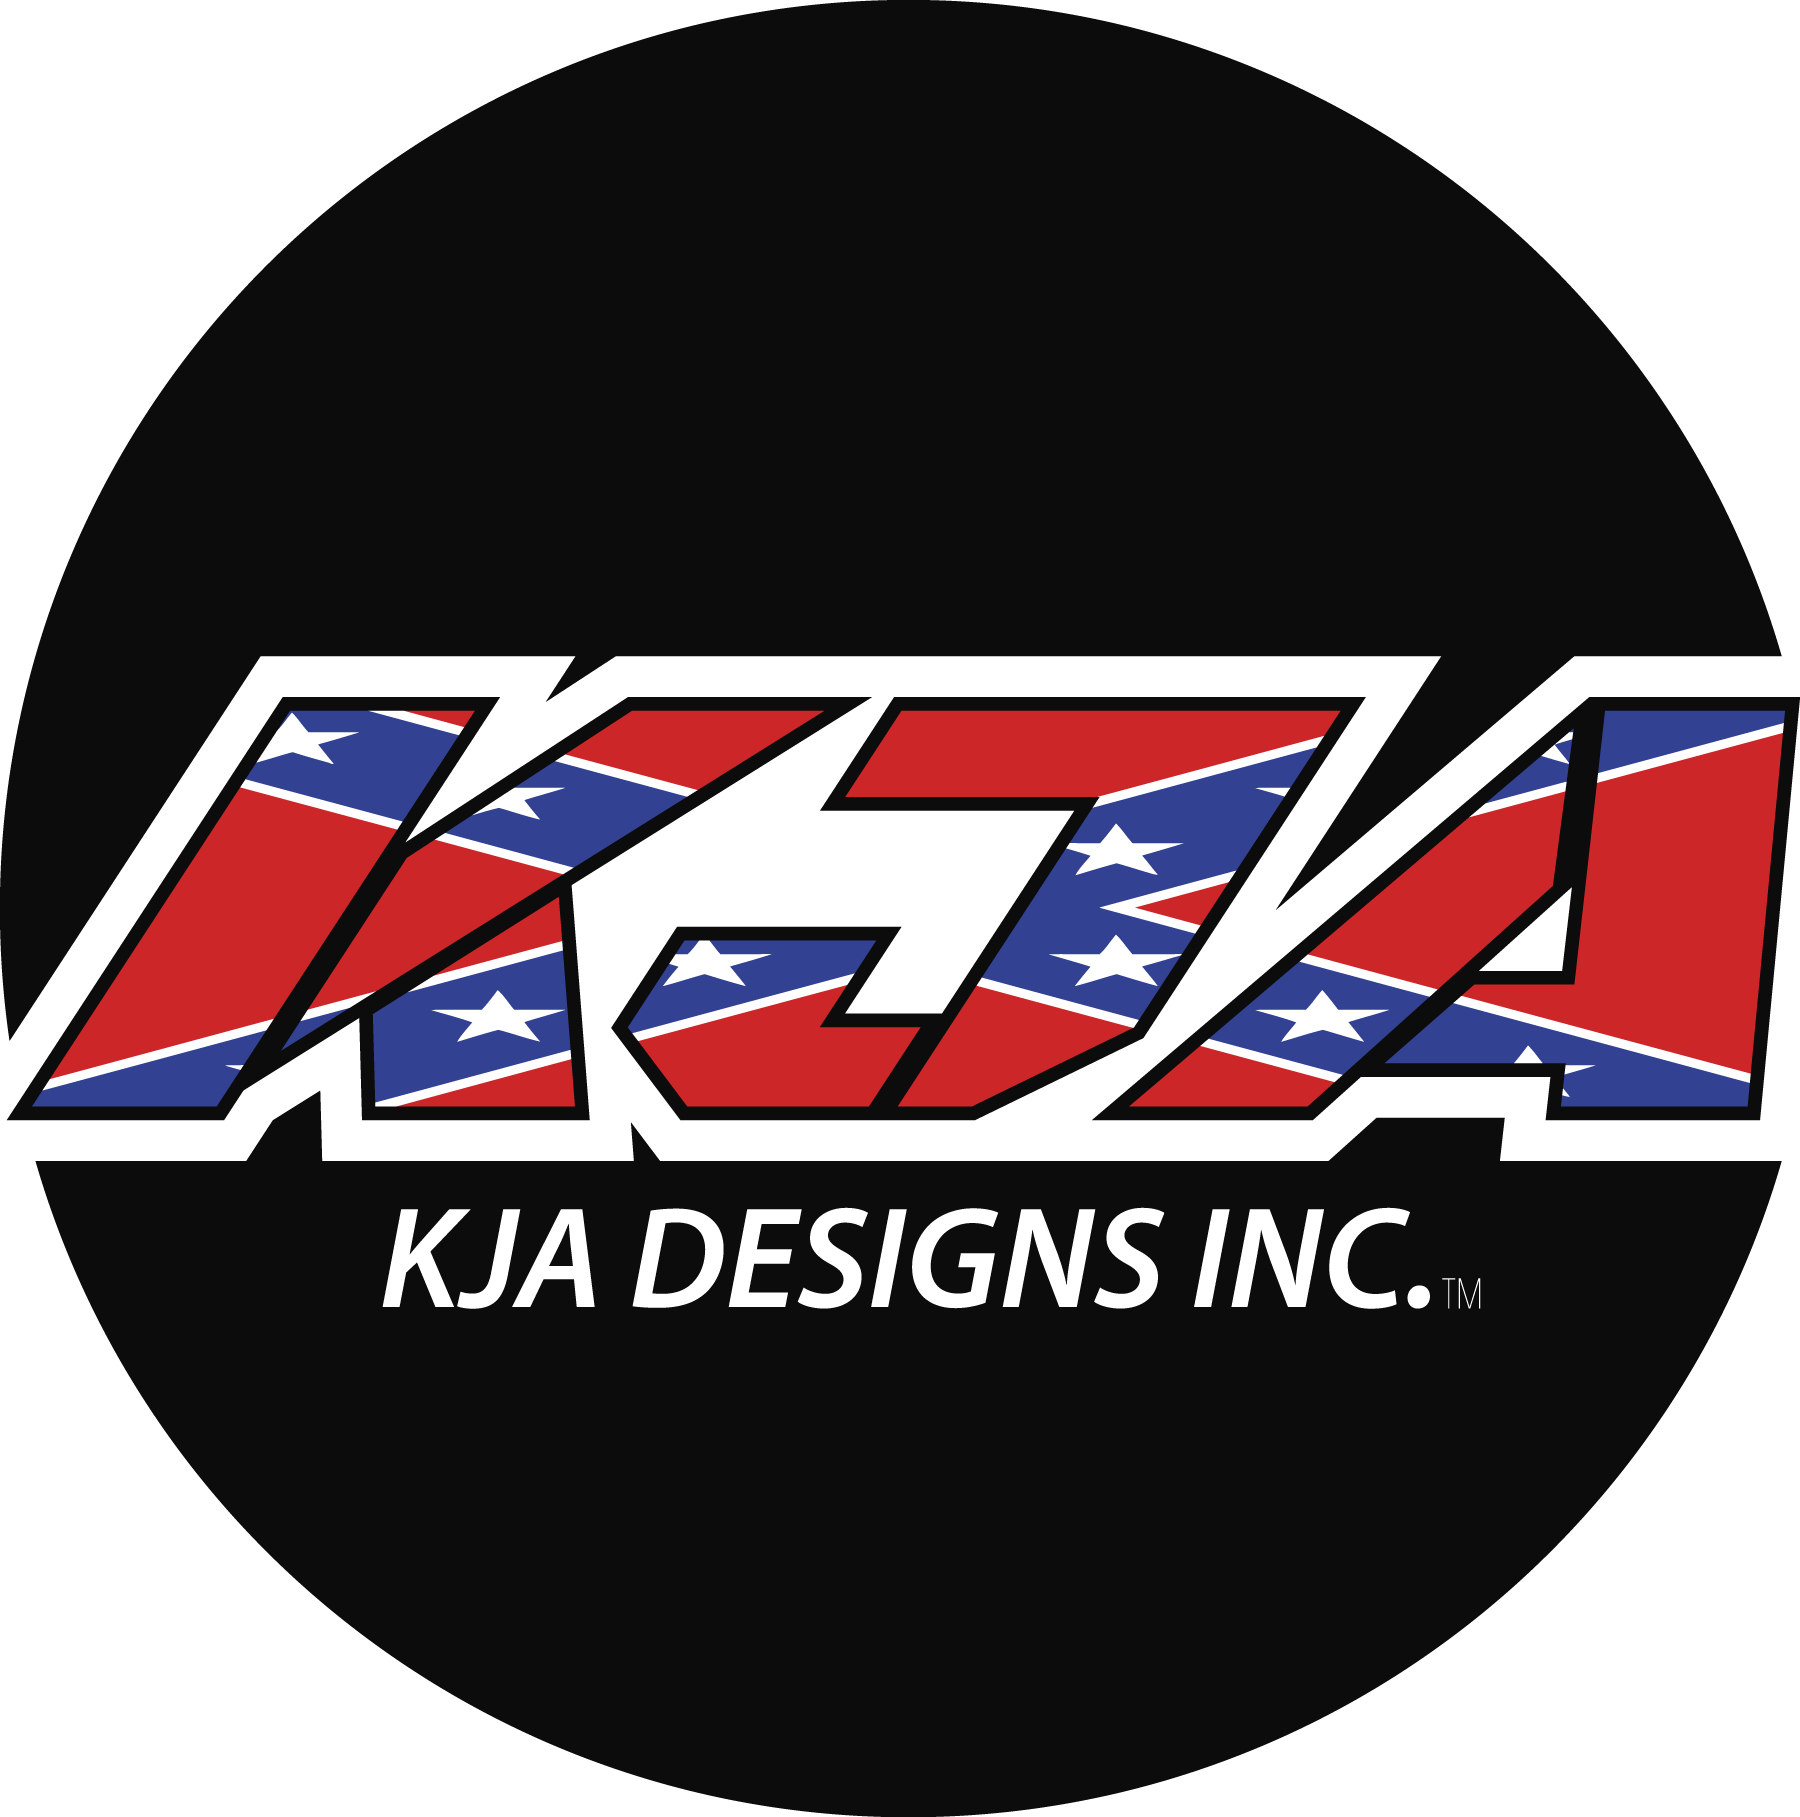 KJA Designs Inc.™ 3A on site